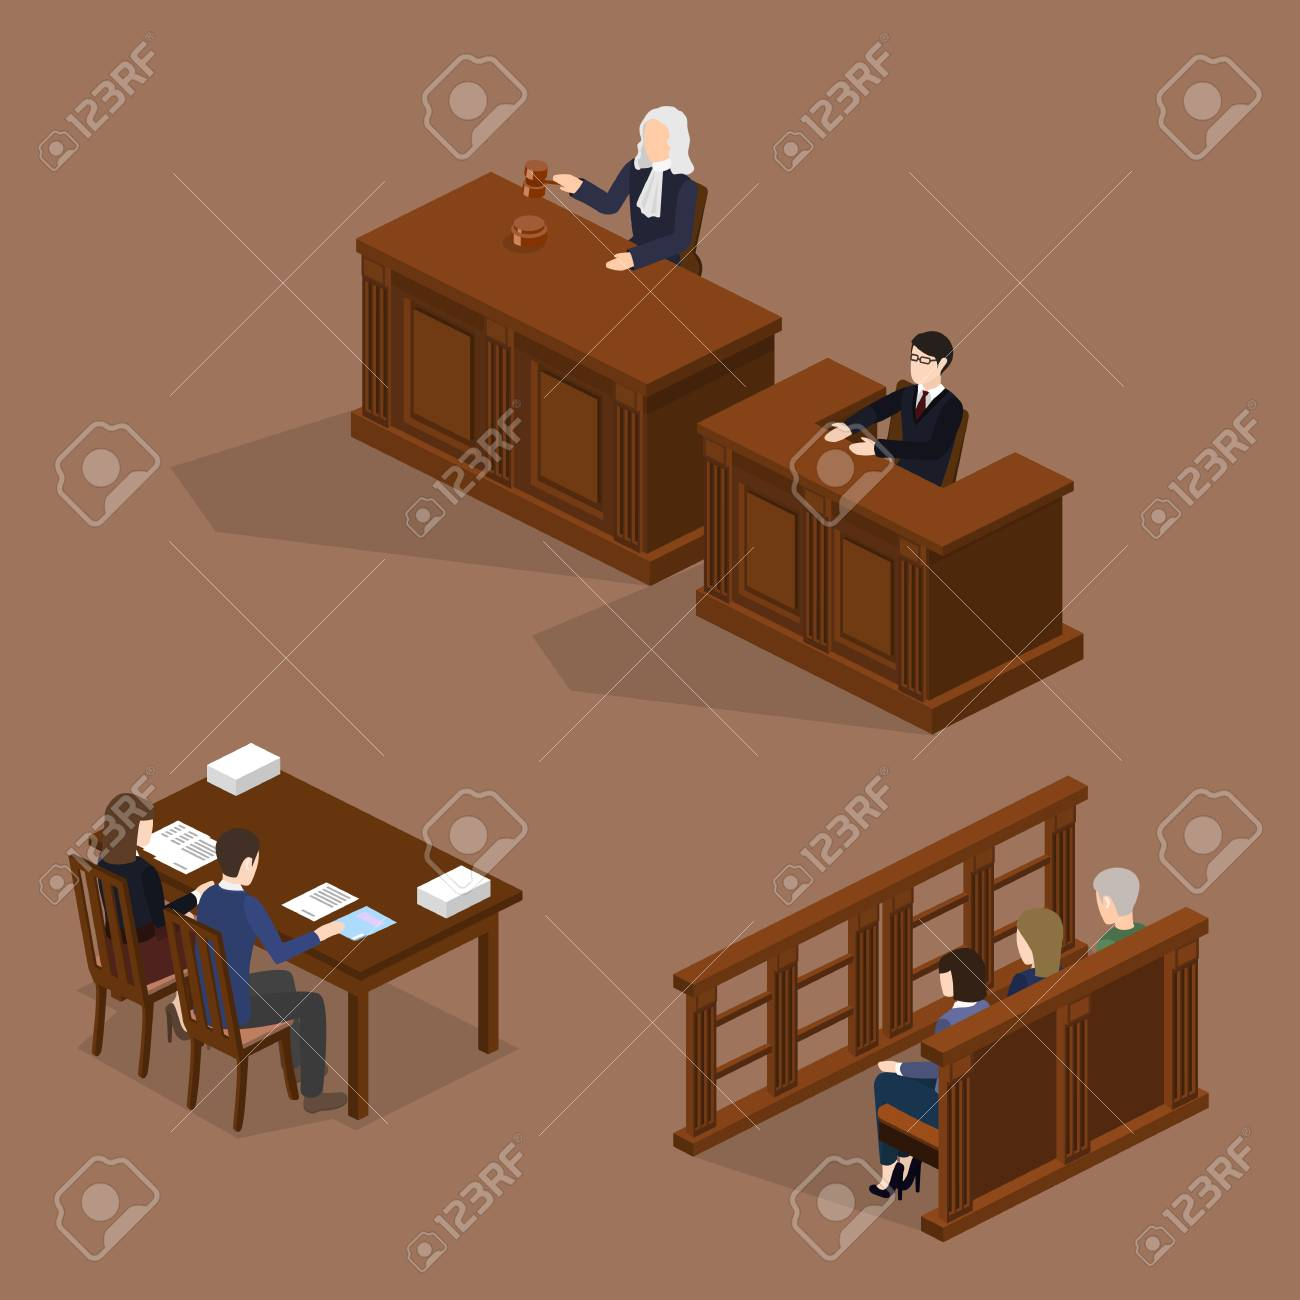 Isometric 3D vector illustration concept the judge conducts the trial. The lawyer protects the defendant. Hall of jury endure verdict. Set of object - 90140873